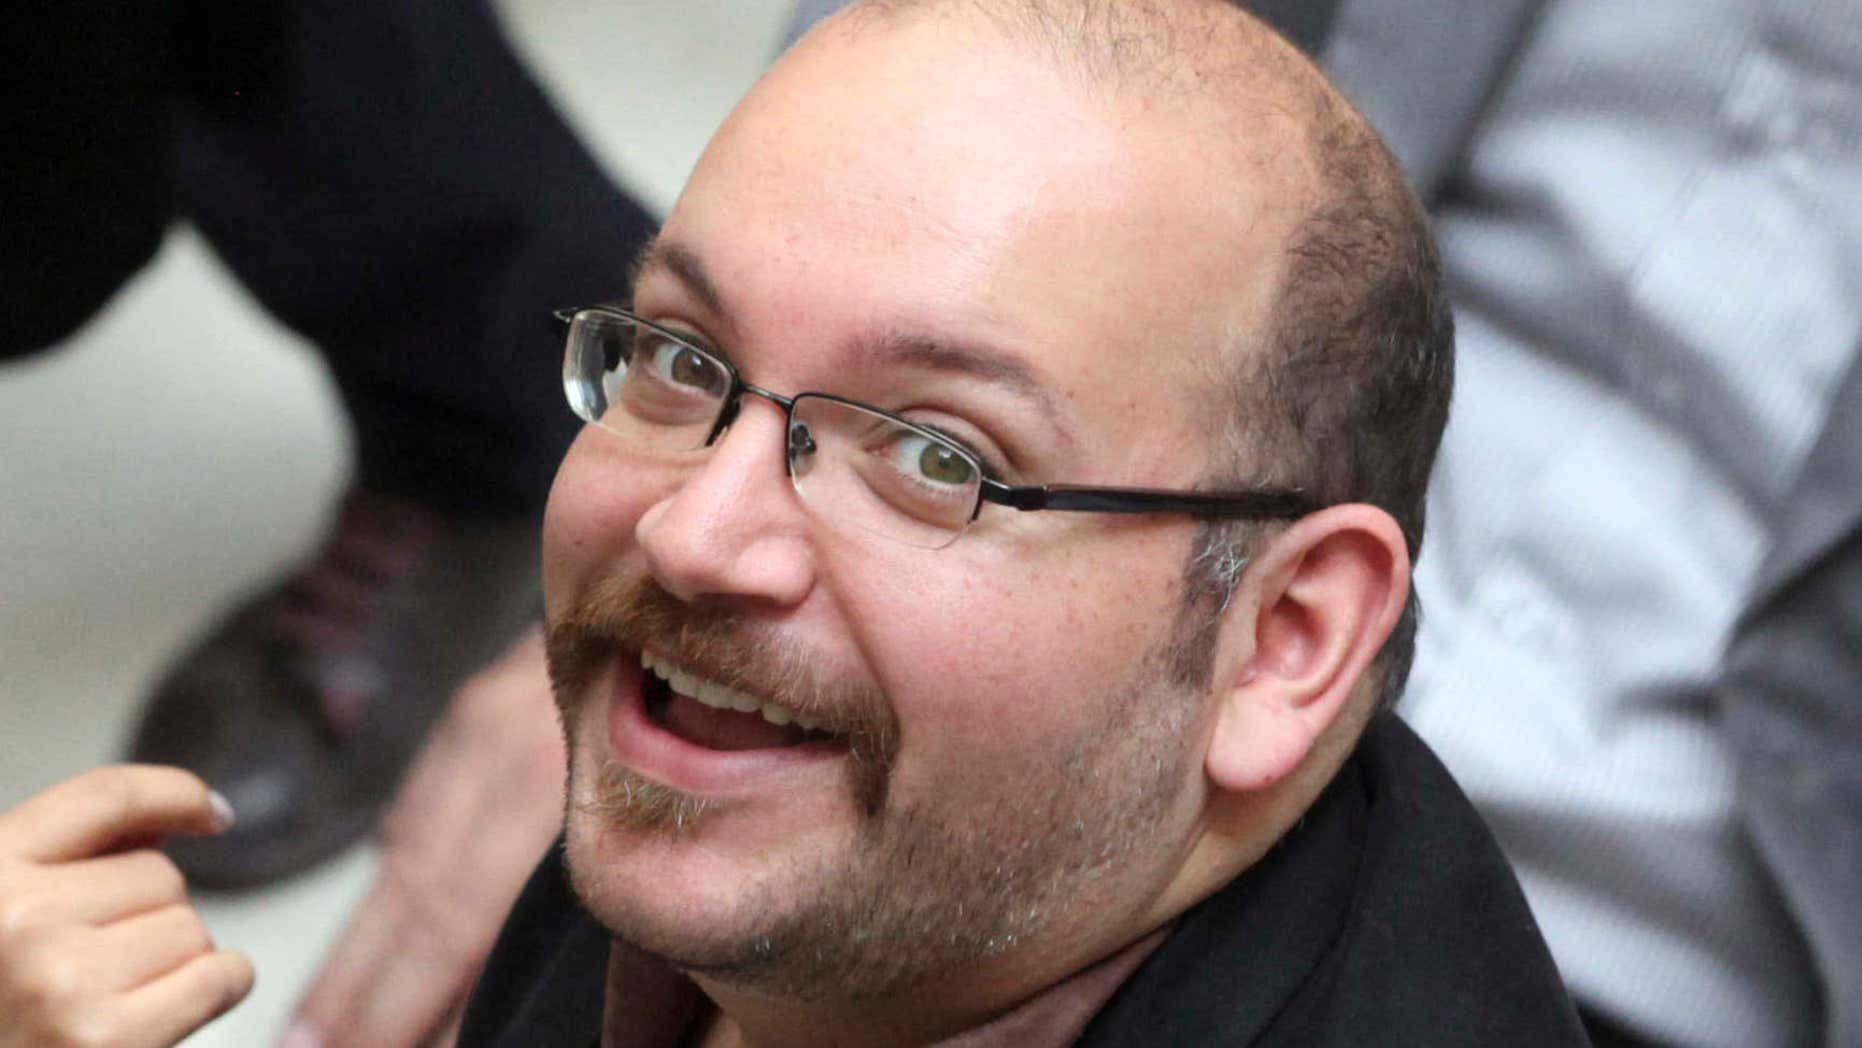 In this April 11, 2013 photo, Jason Rezaian, an Iranian-American correspondent for the Washington Post, smiles as he attends a presidential campaign of President Hassan Rouhani in Tehran, Iran.